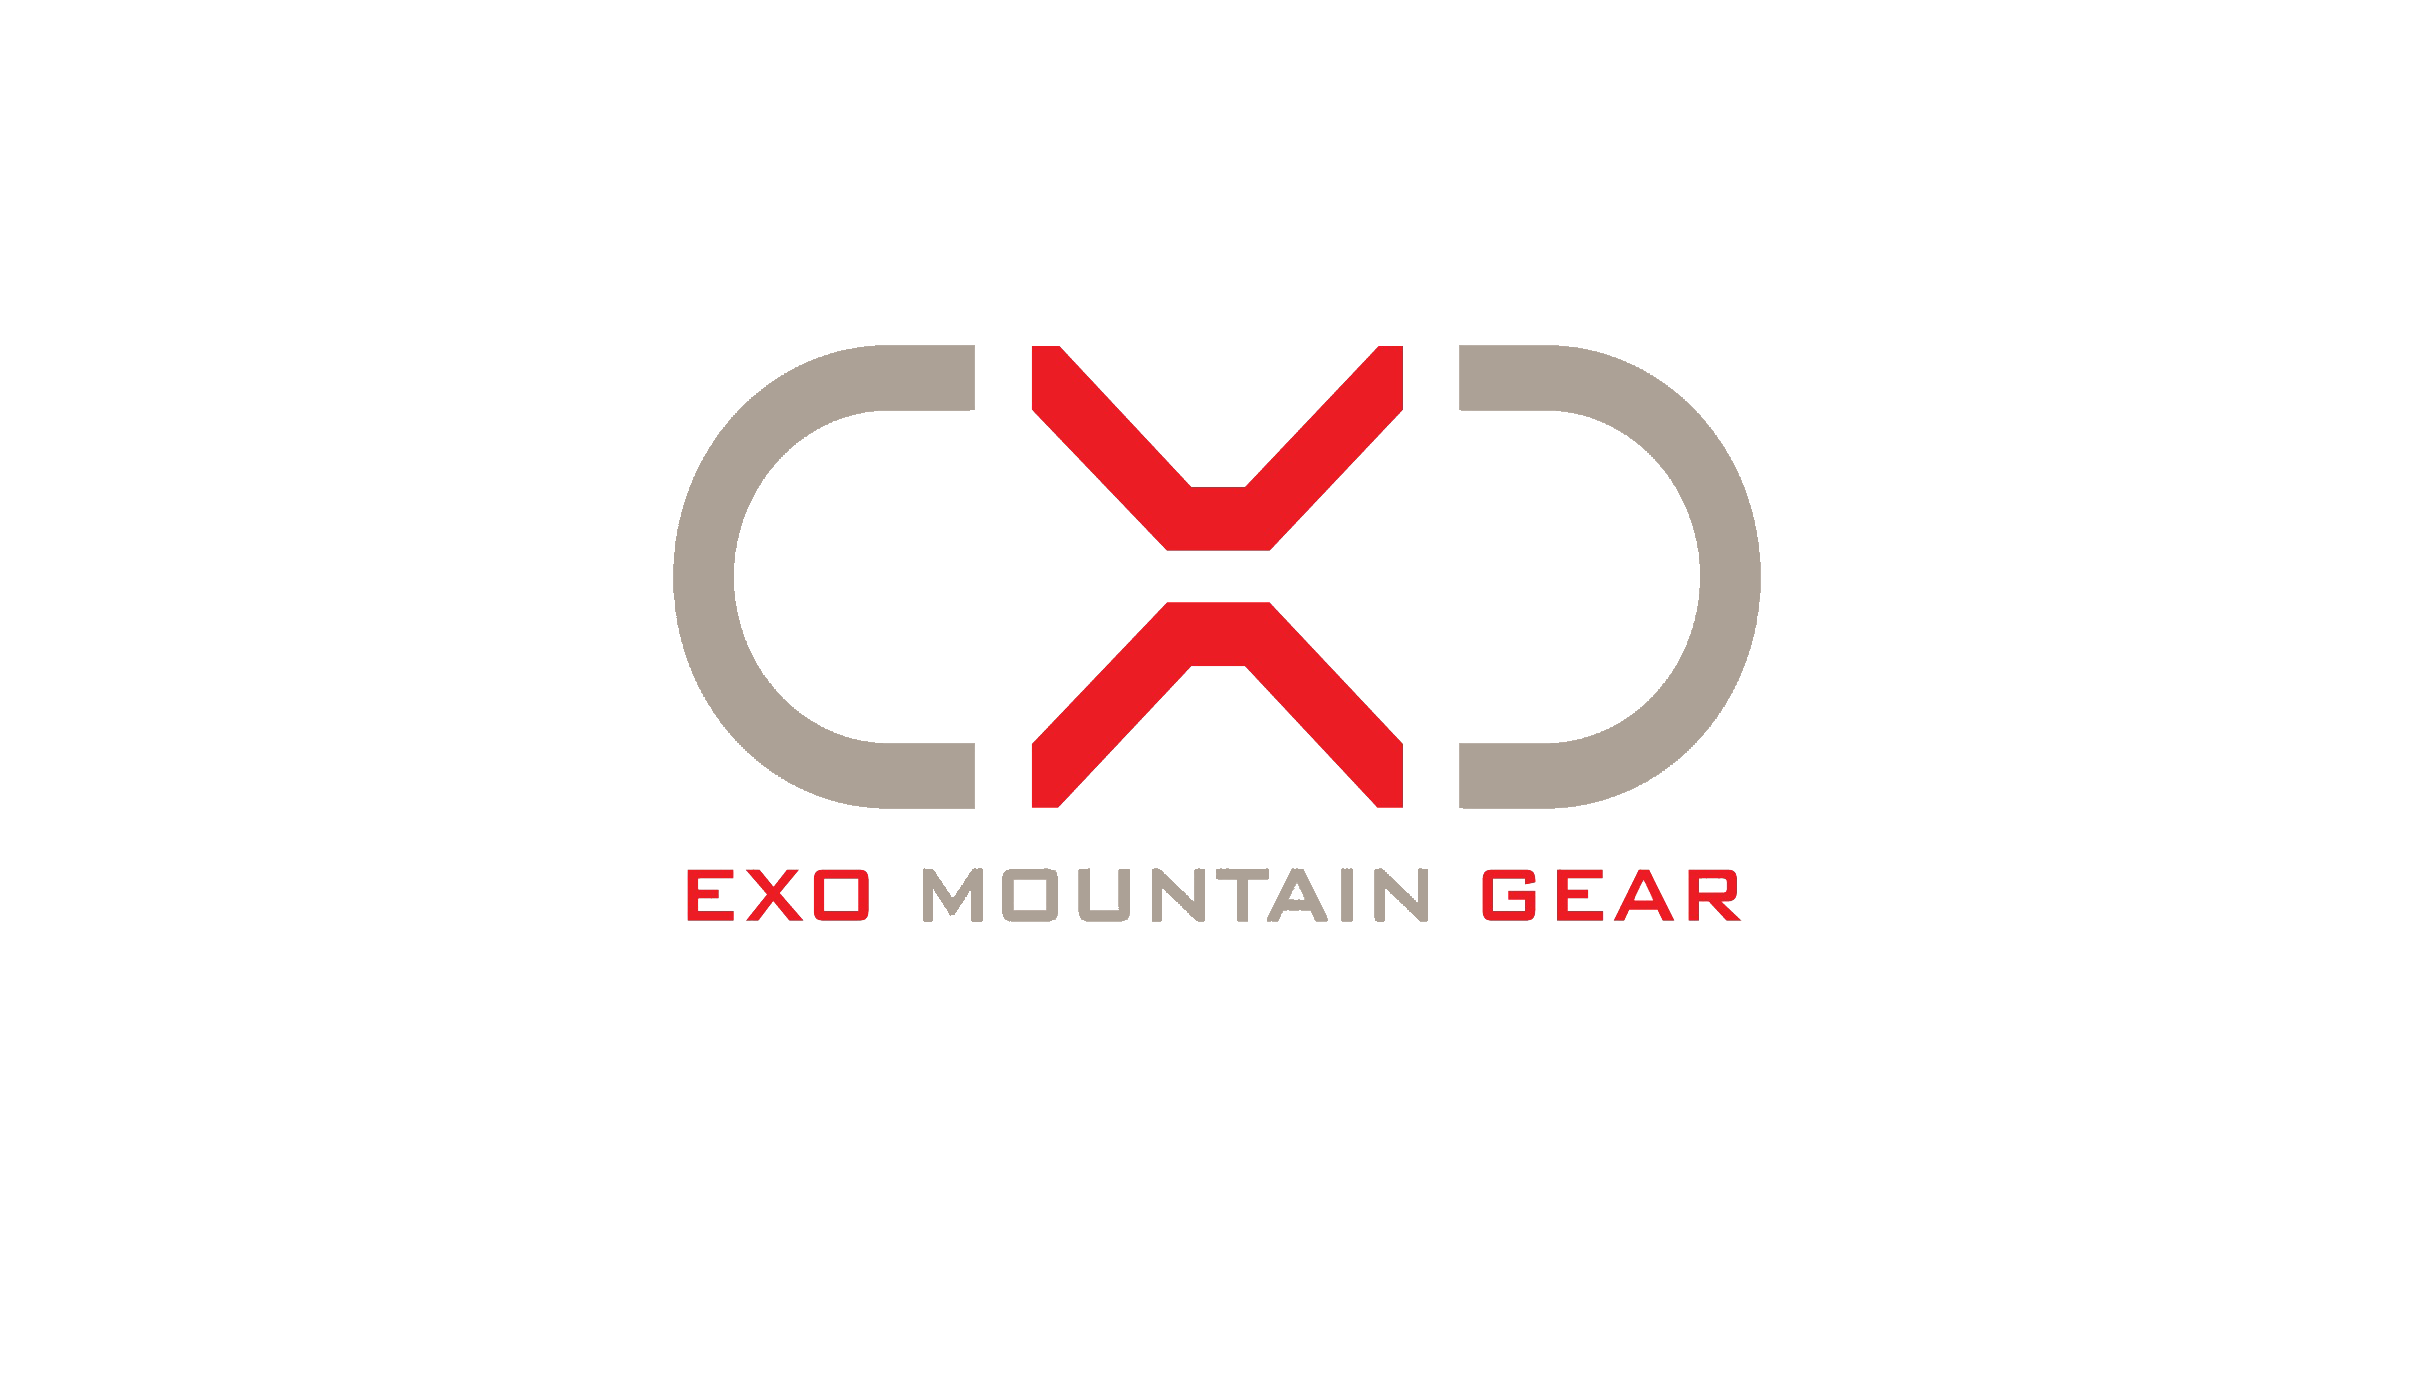 exo-mountain-gear